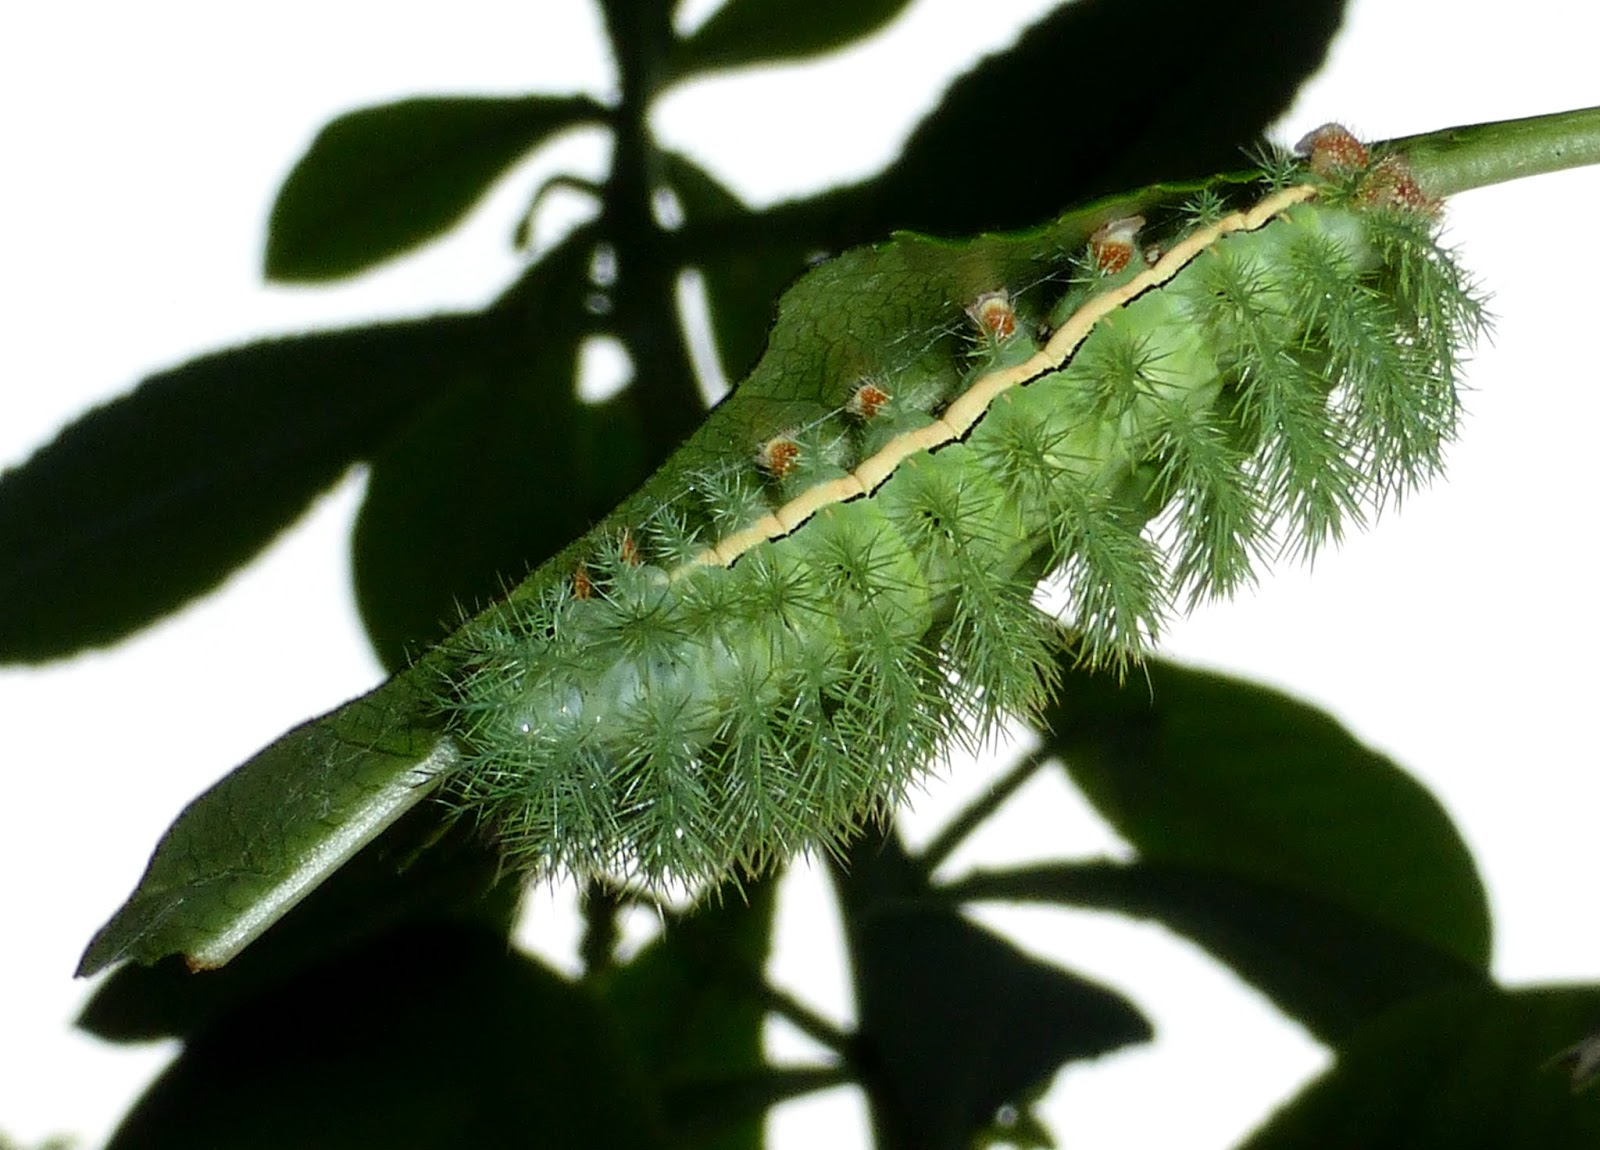 Automeris randa caterpillar